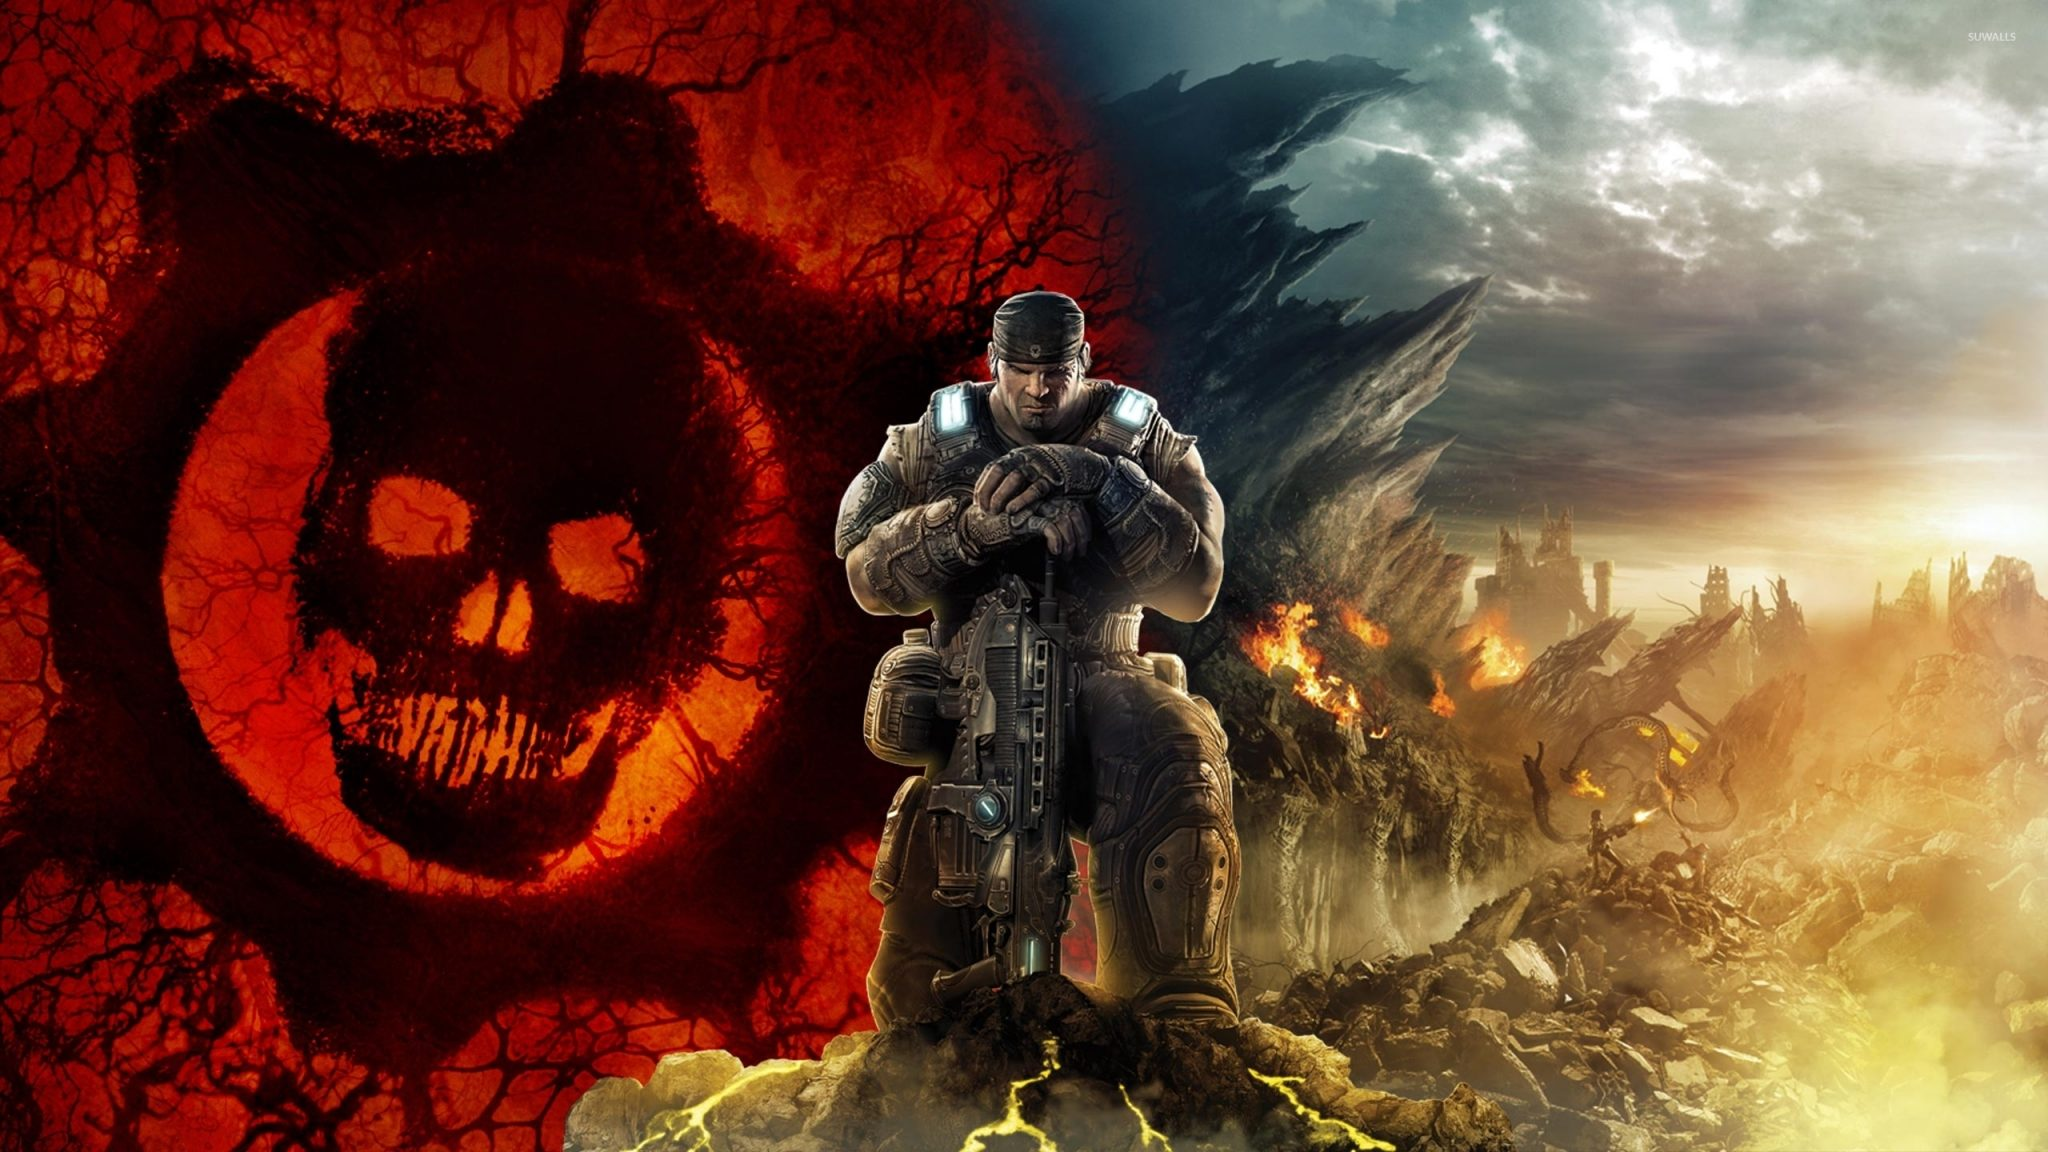 gears-of-war-3-41895-2560x1440